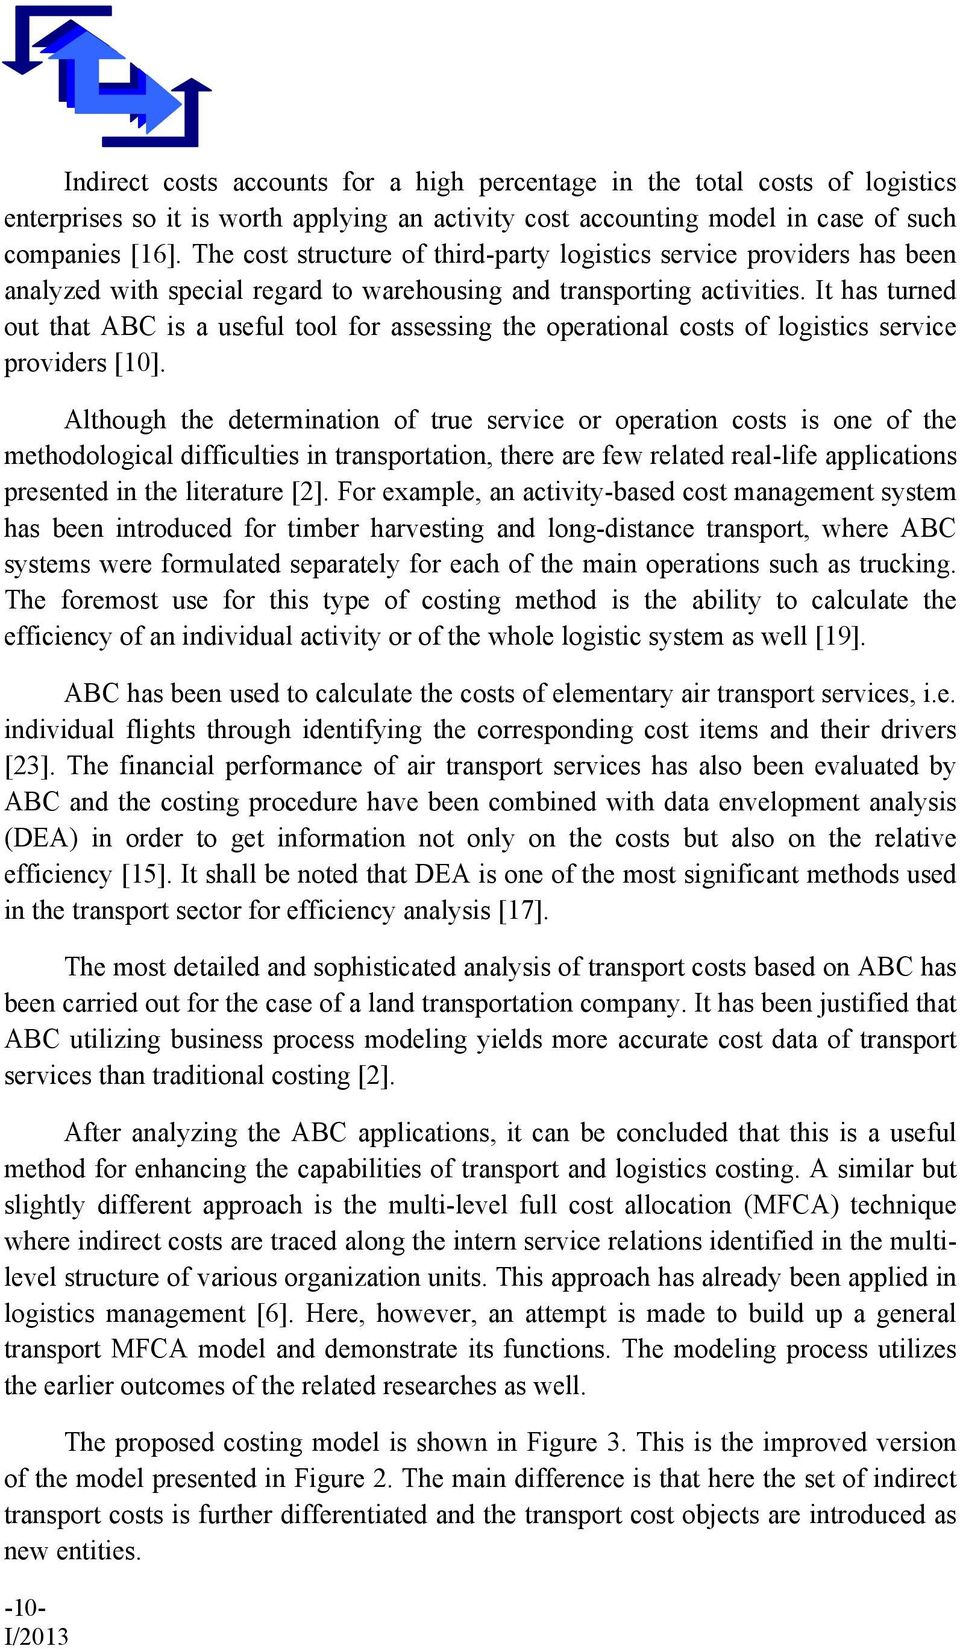 It has turned out that AB is a useful tool for assessing the oerational costs of logistics service roviders [10].